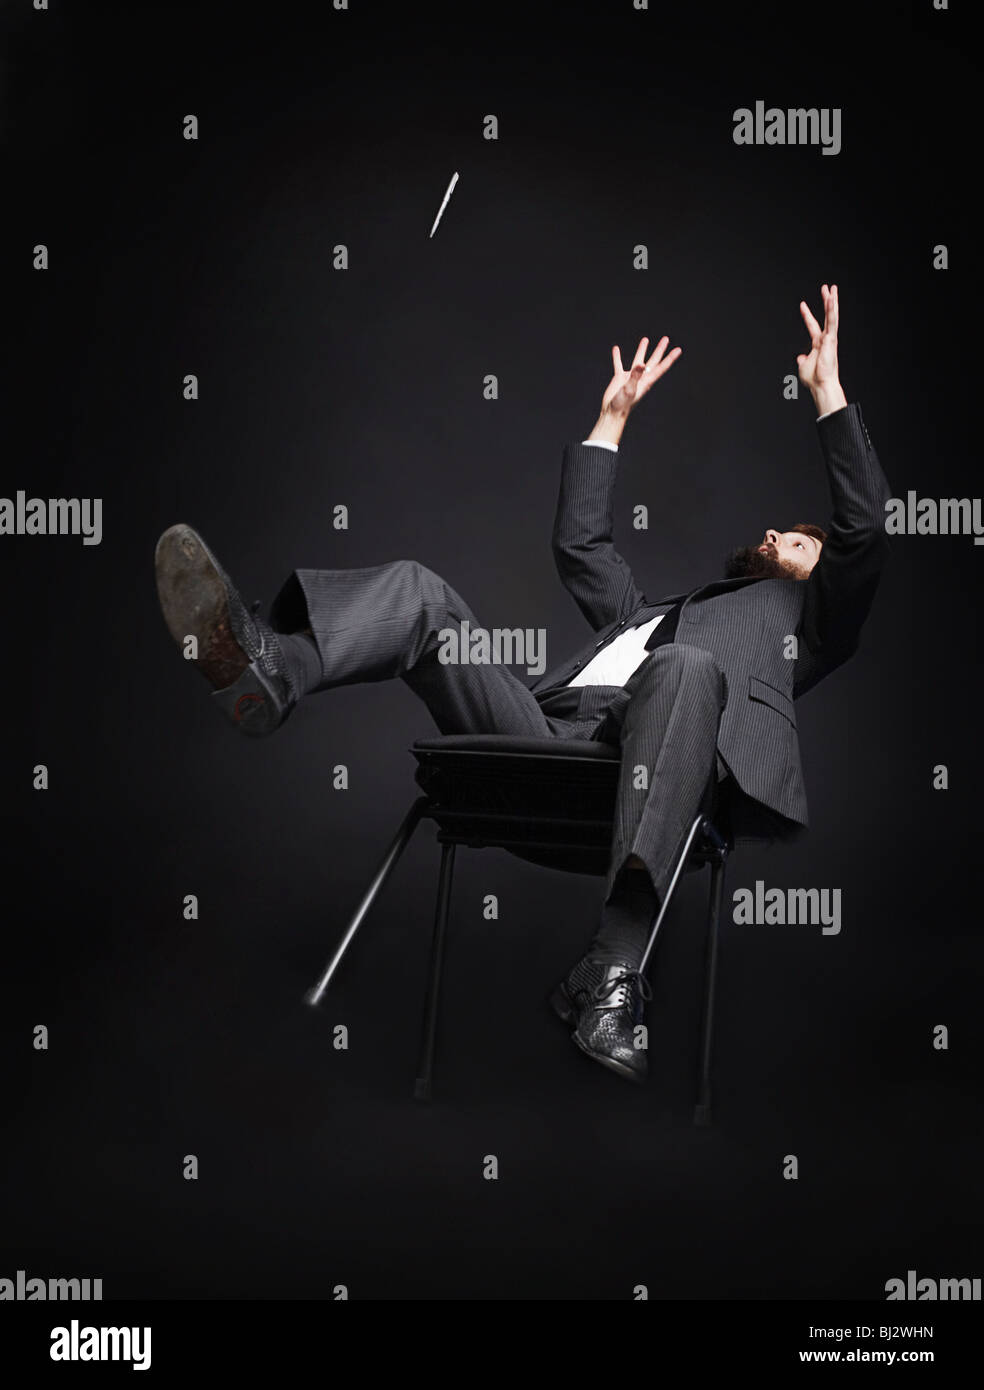 L'homme tomber d'une chaise Photo Stock